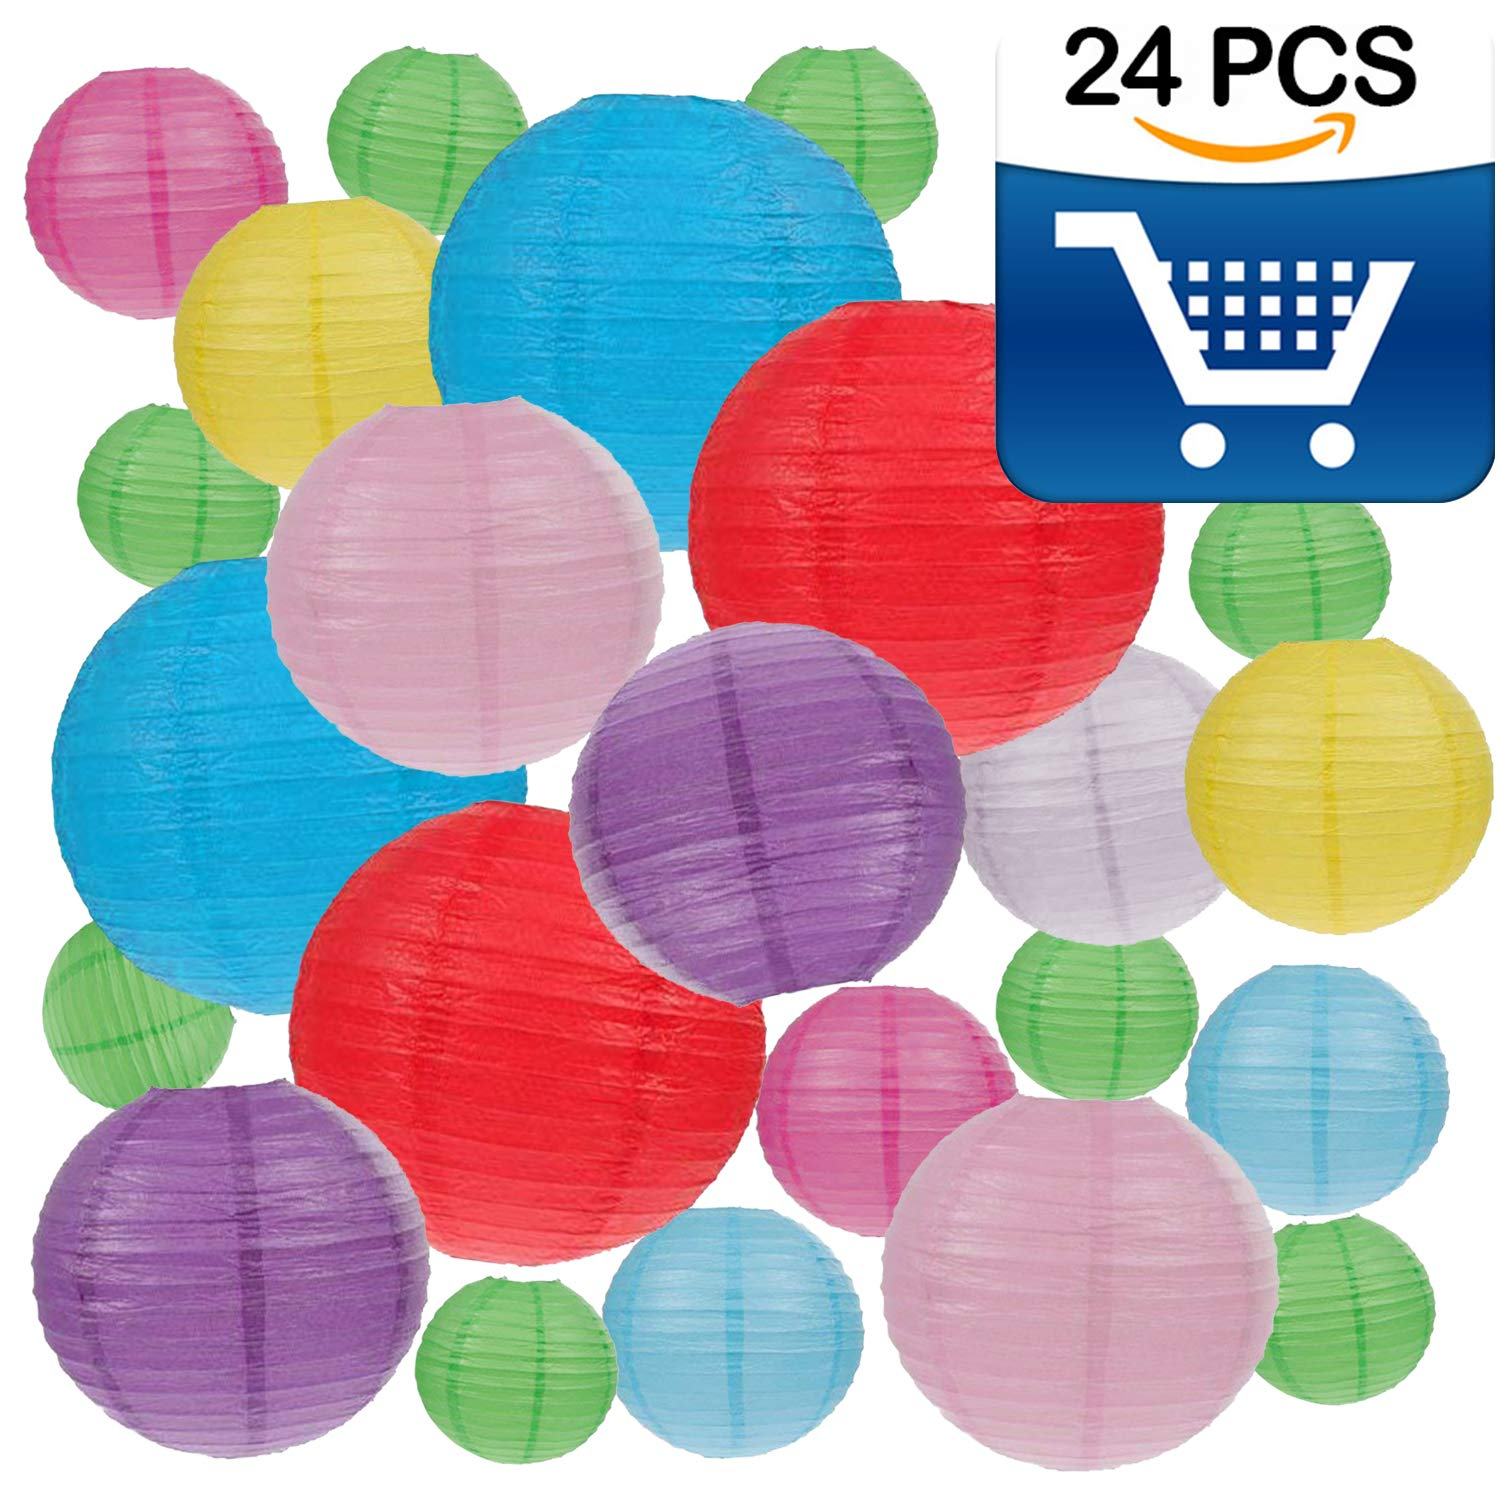 24 Packs Colorful Paper Lanterns Decorative with Assorted Sizes